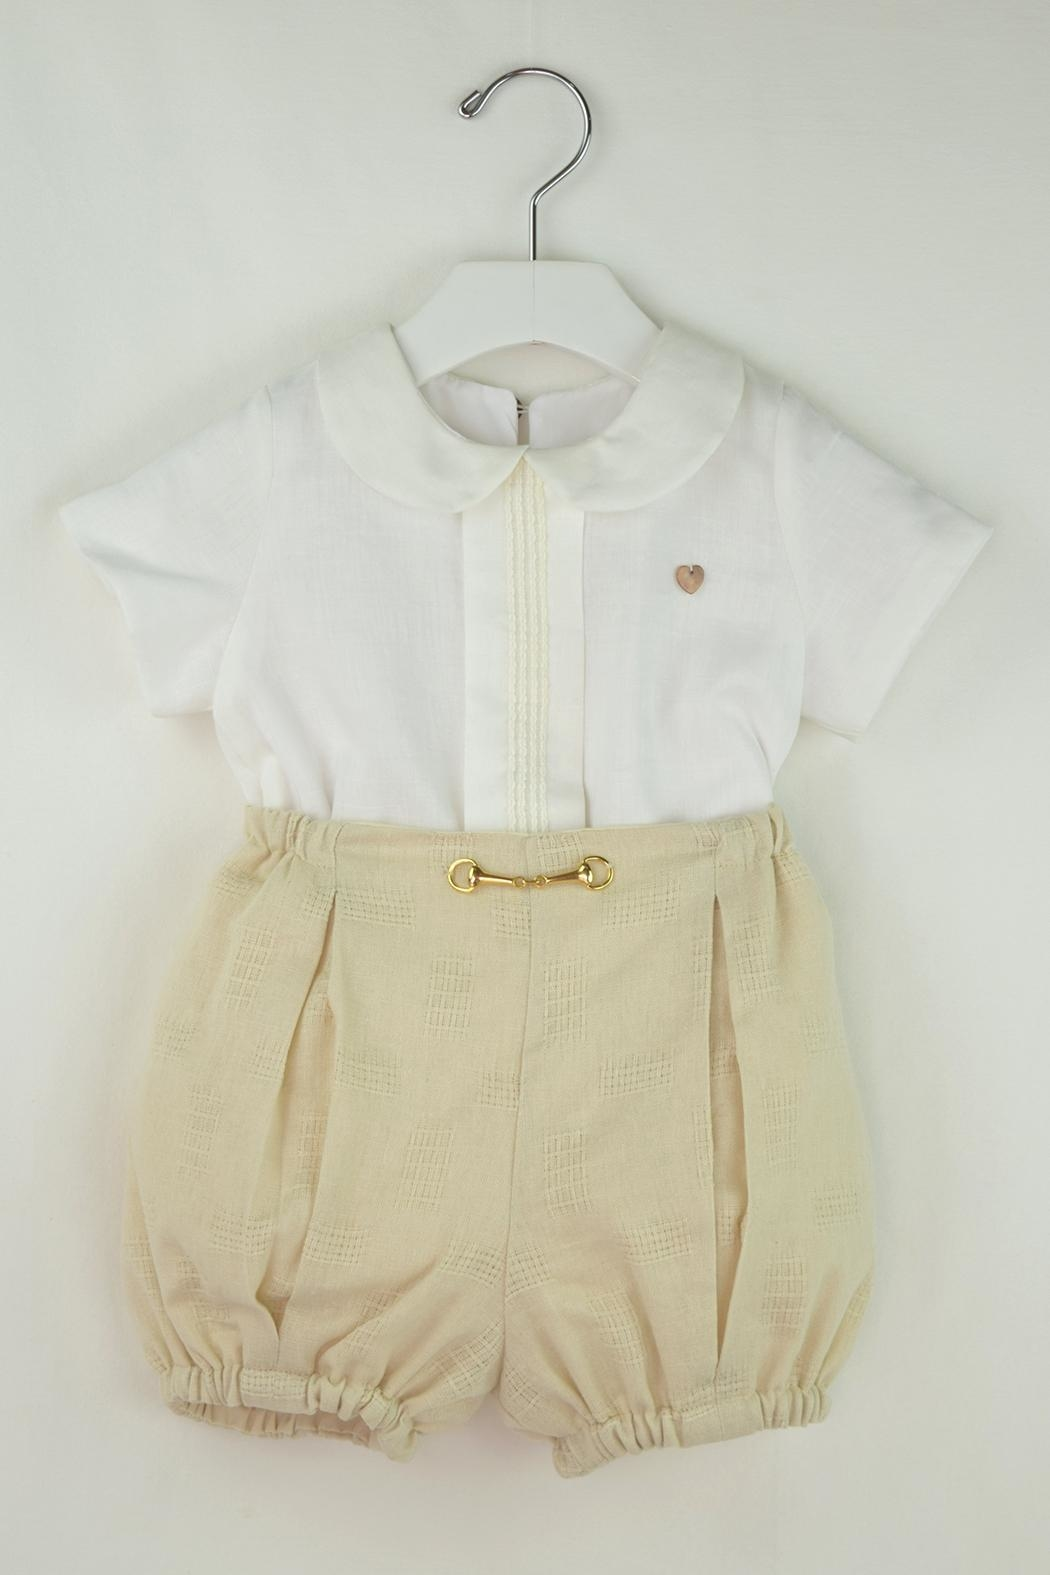 Cuore Baby White & Beige Outfit - Main Image